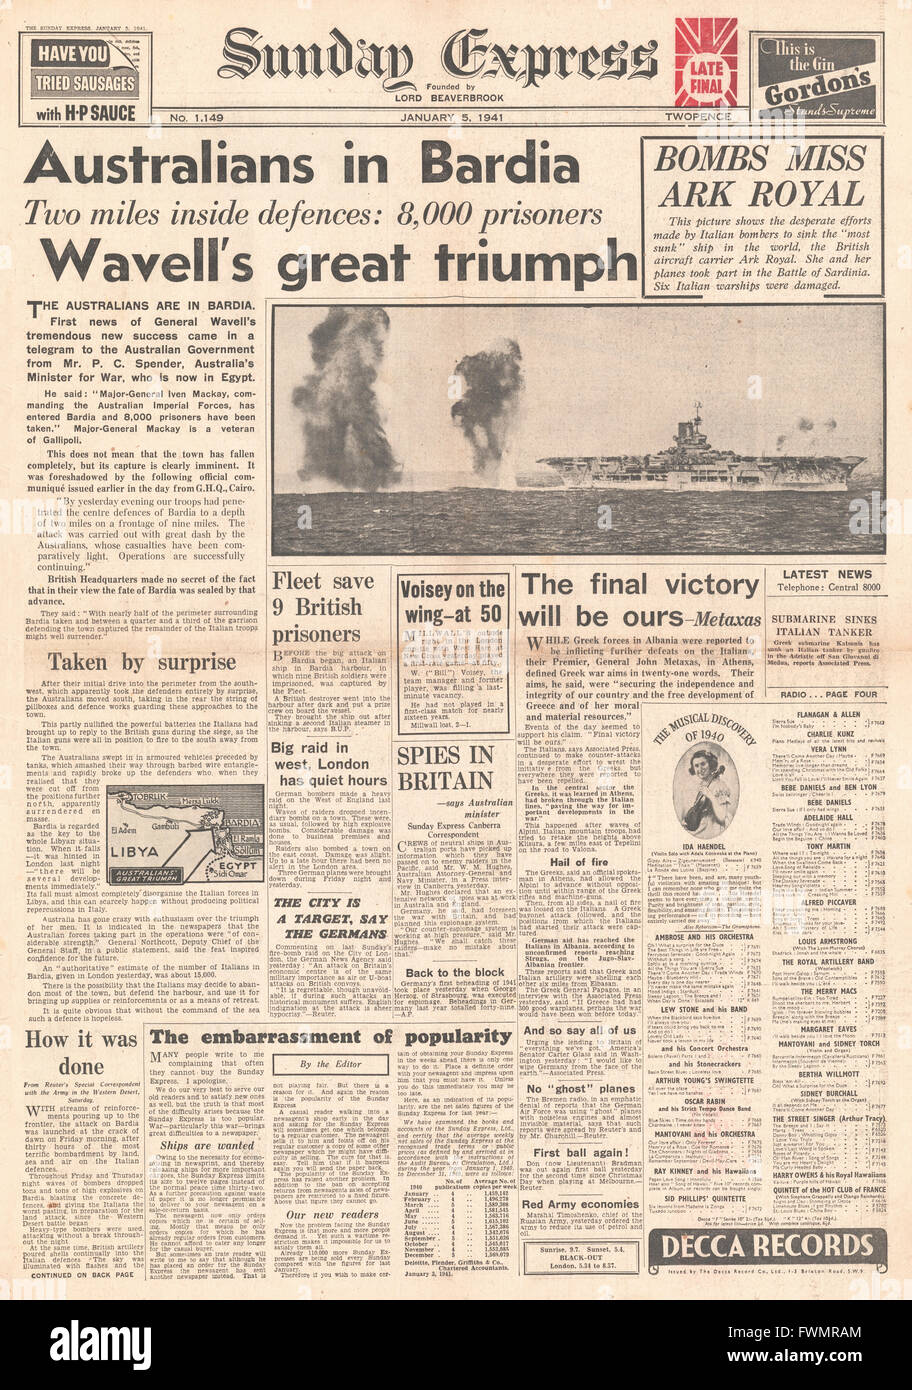 1941 front page Sunday Express Australian Troops Enter Bardia and HMS Ark Royal under fire - Stock Image